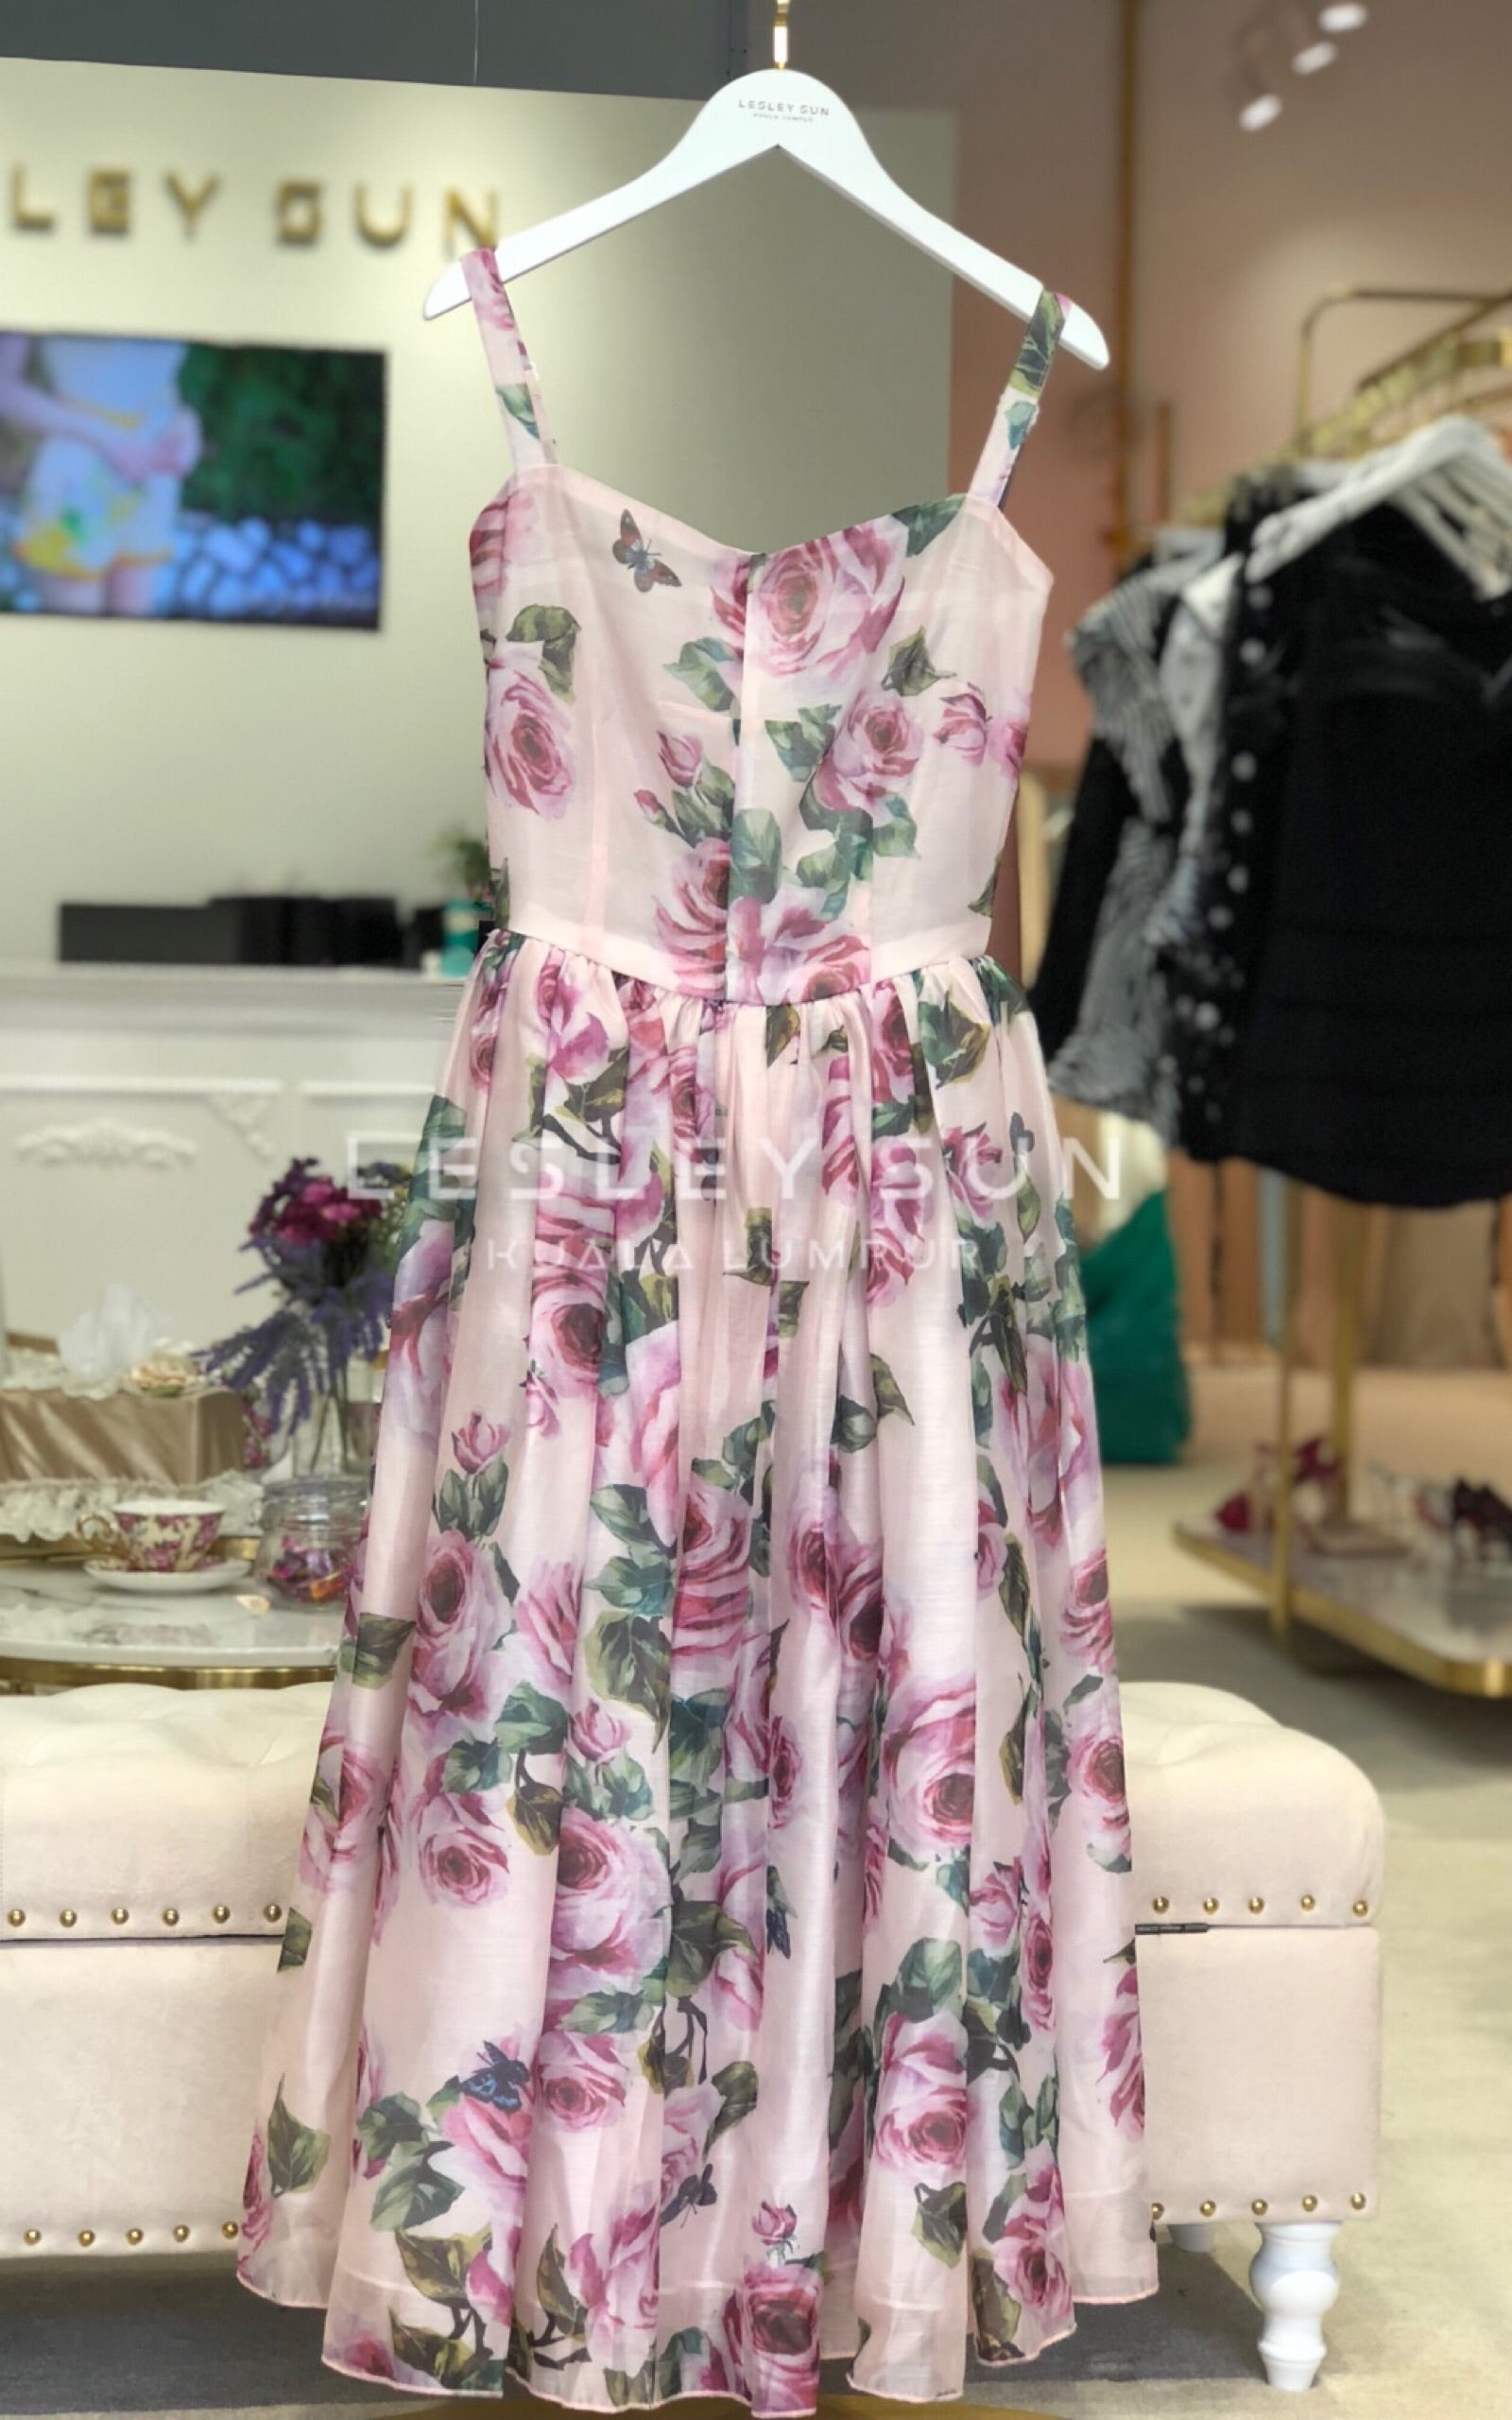 Rosalind Flora Dress